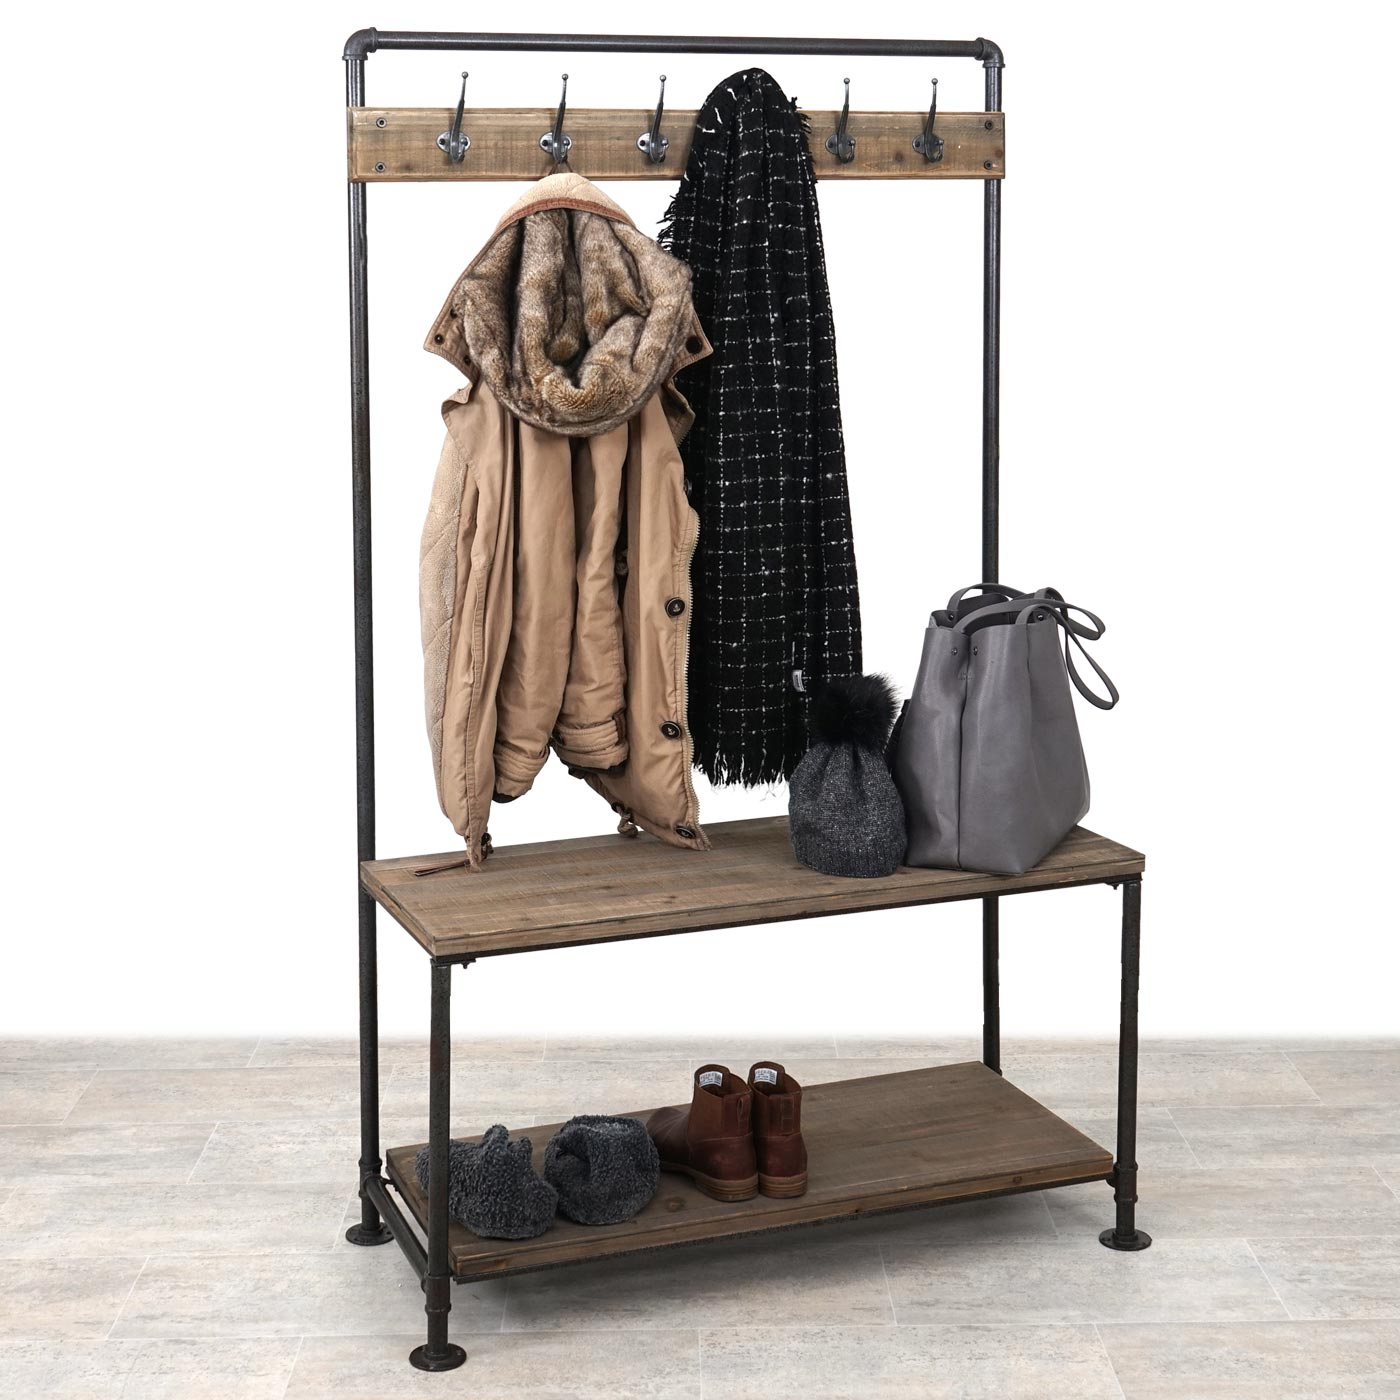 standgarderobe hwc c10 garderobe landhaus industriedesign echtholz 170x98x40cm. Black Bedroom Furniture Sets. Home Design Ideas